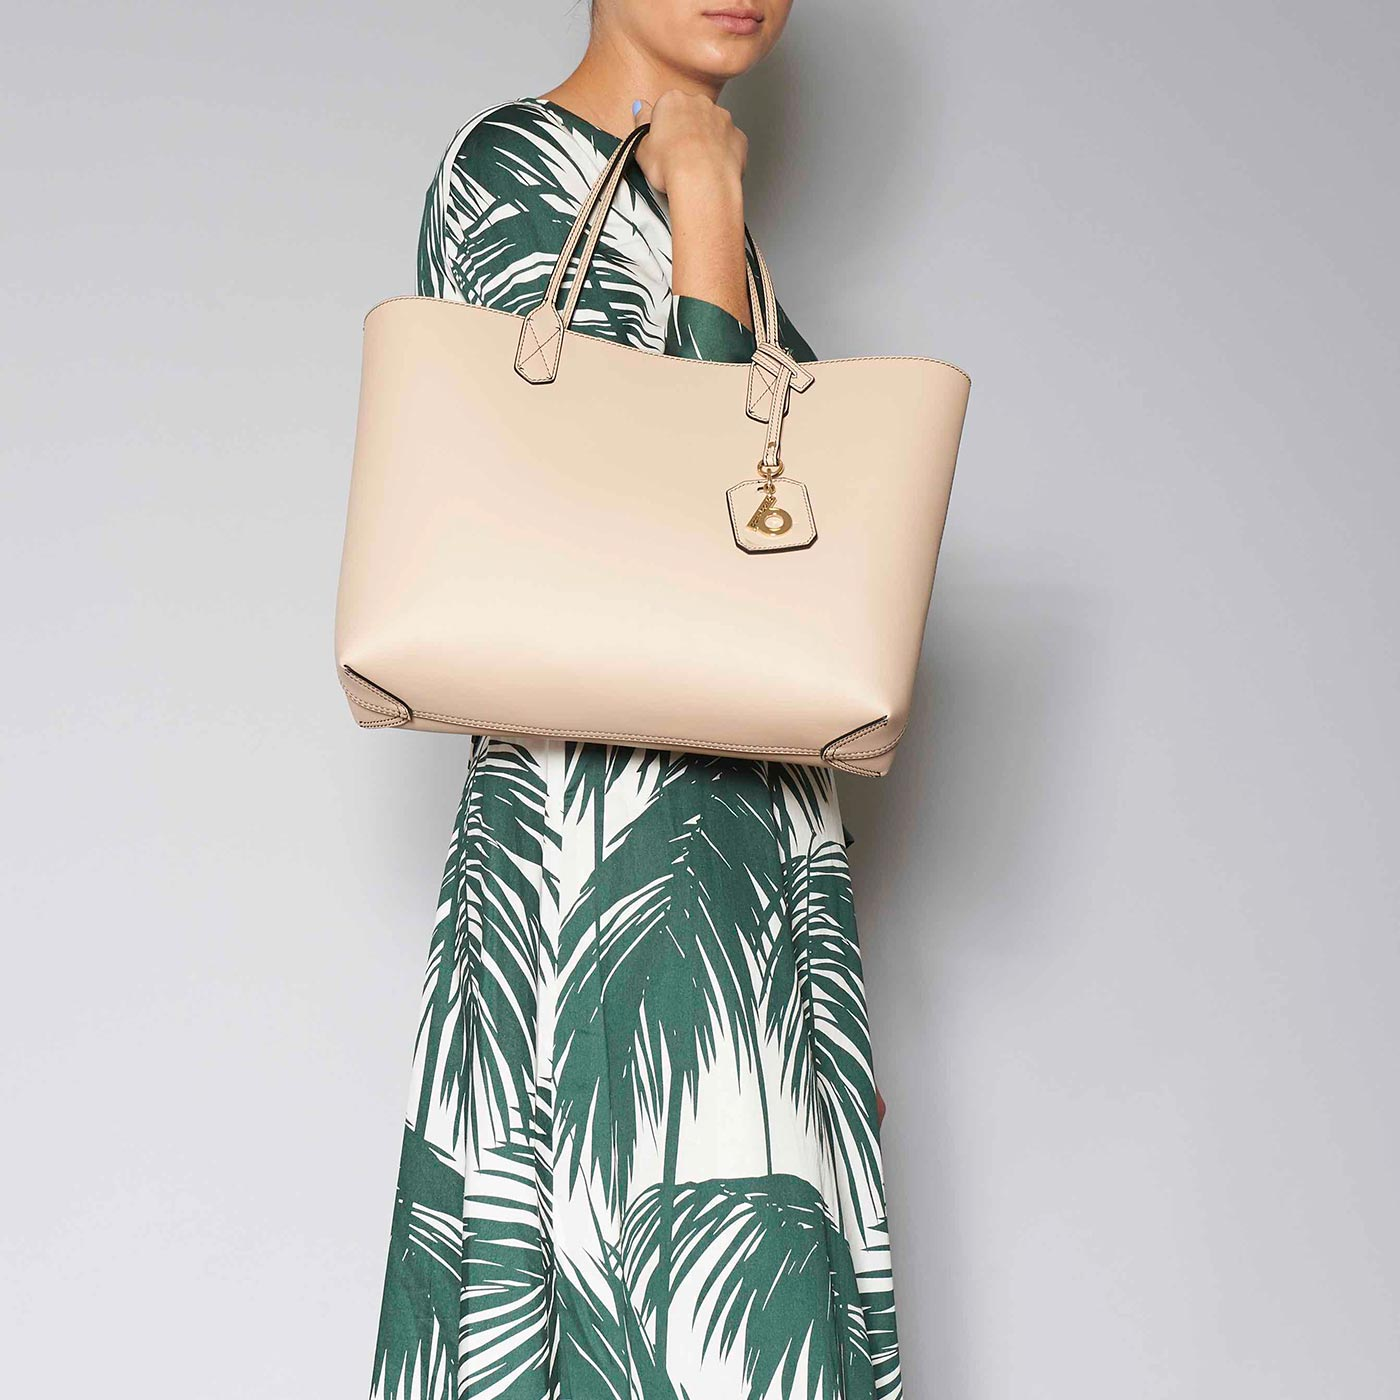 Barr + Barr Milan Tote